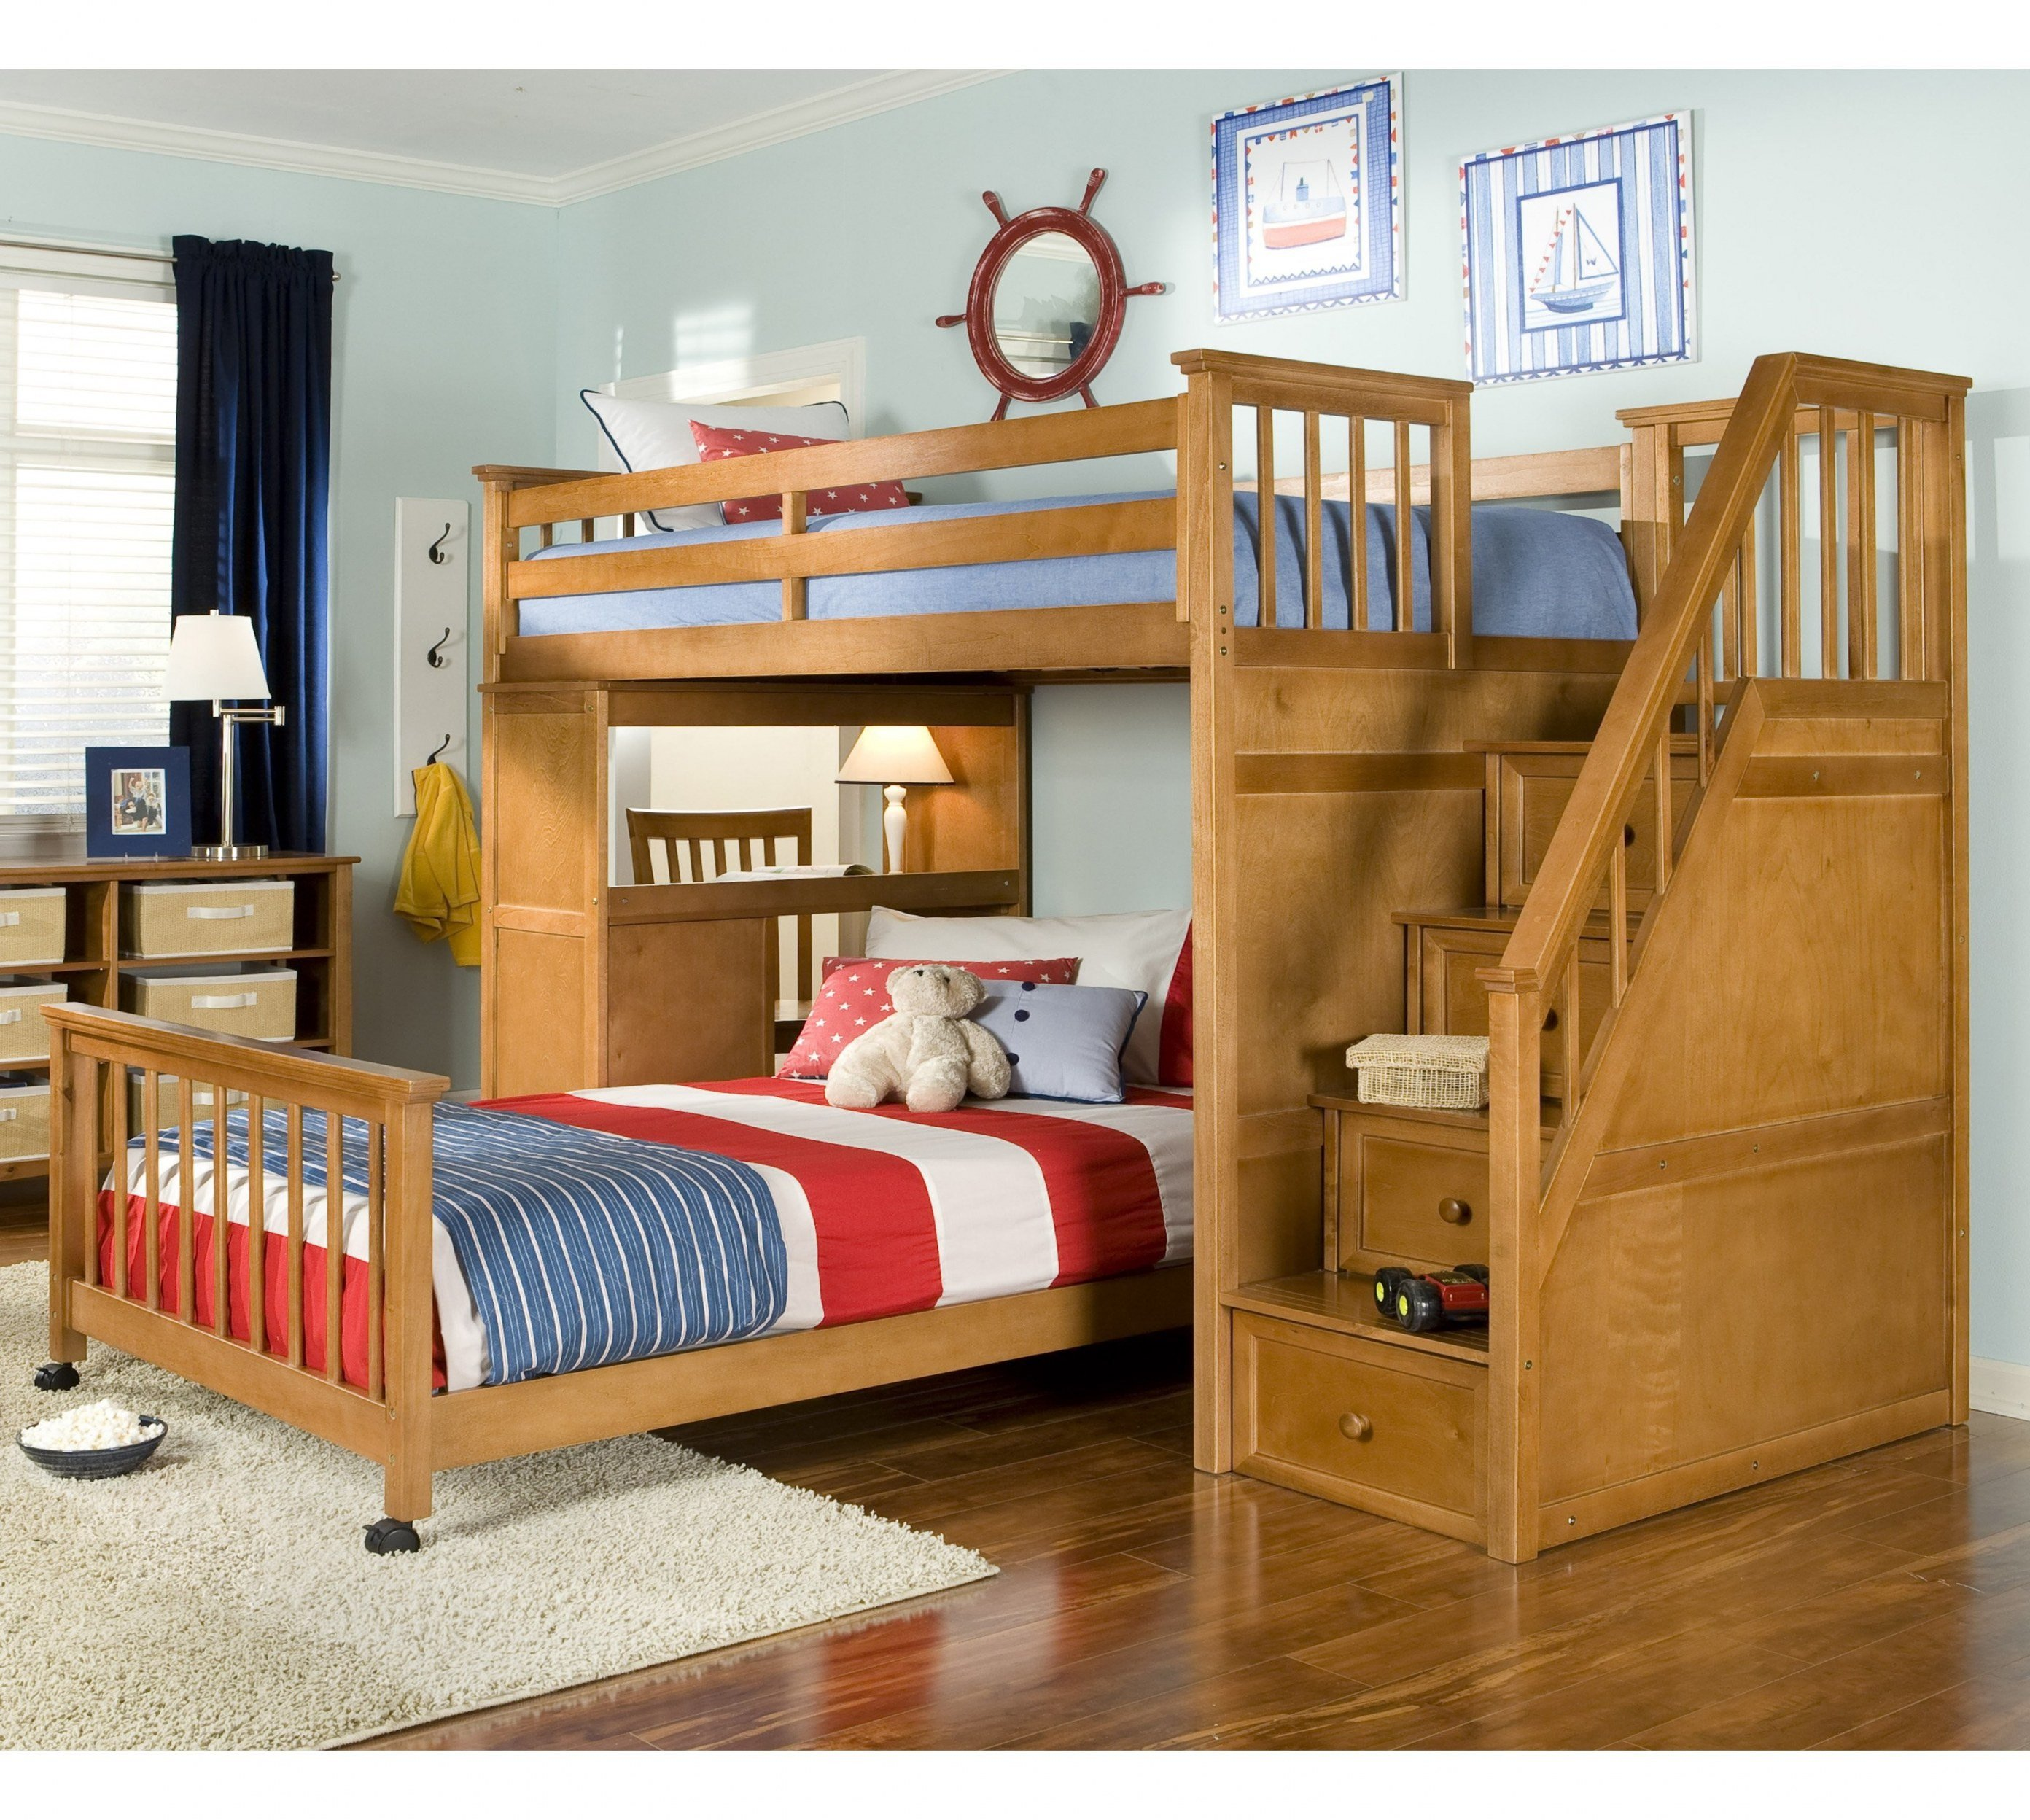 Kids Bedroom Set with Desk Best Of Race Car Bunk Beds 35 Amazingly Unique Boys Beds that You